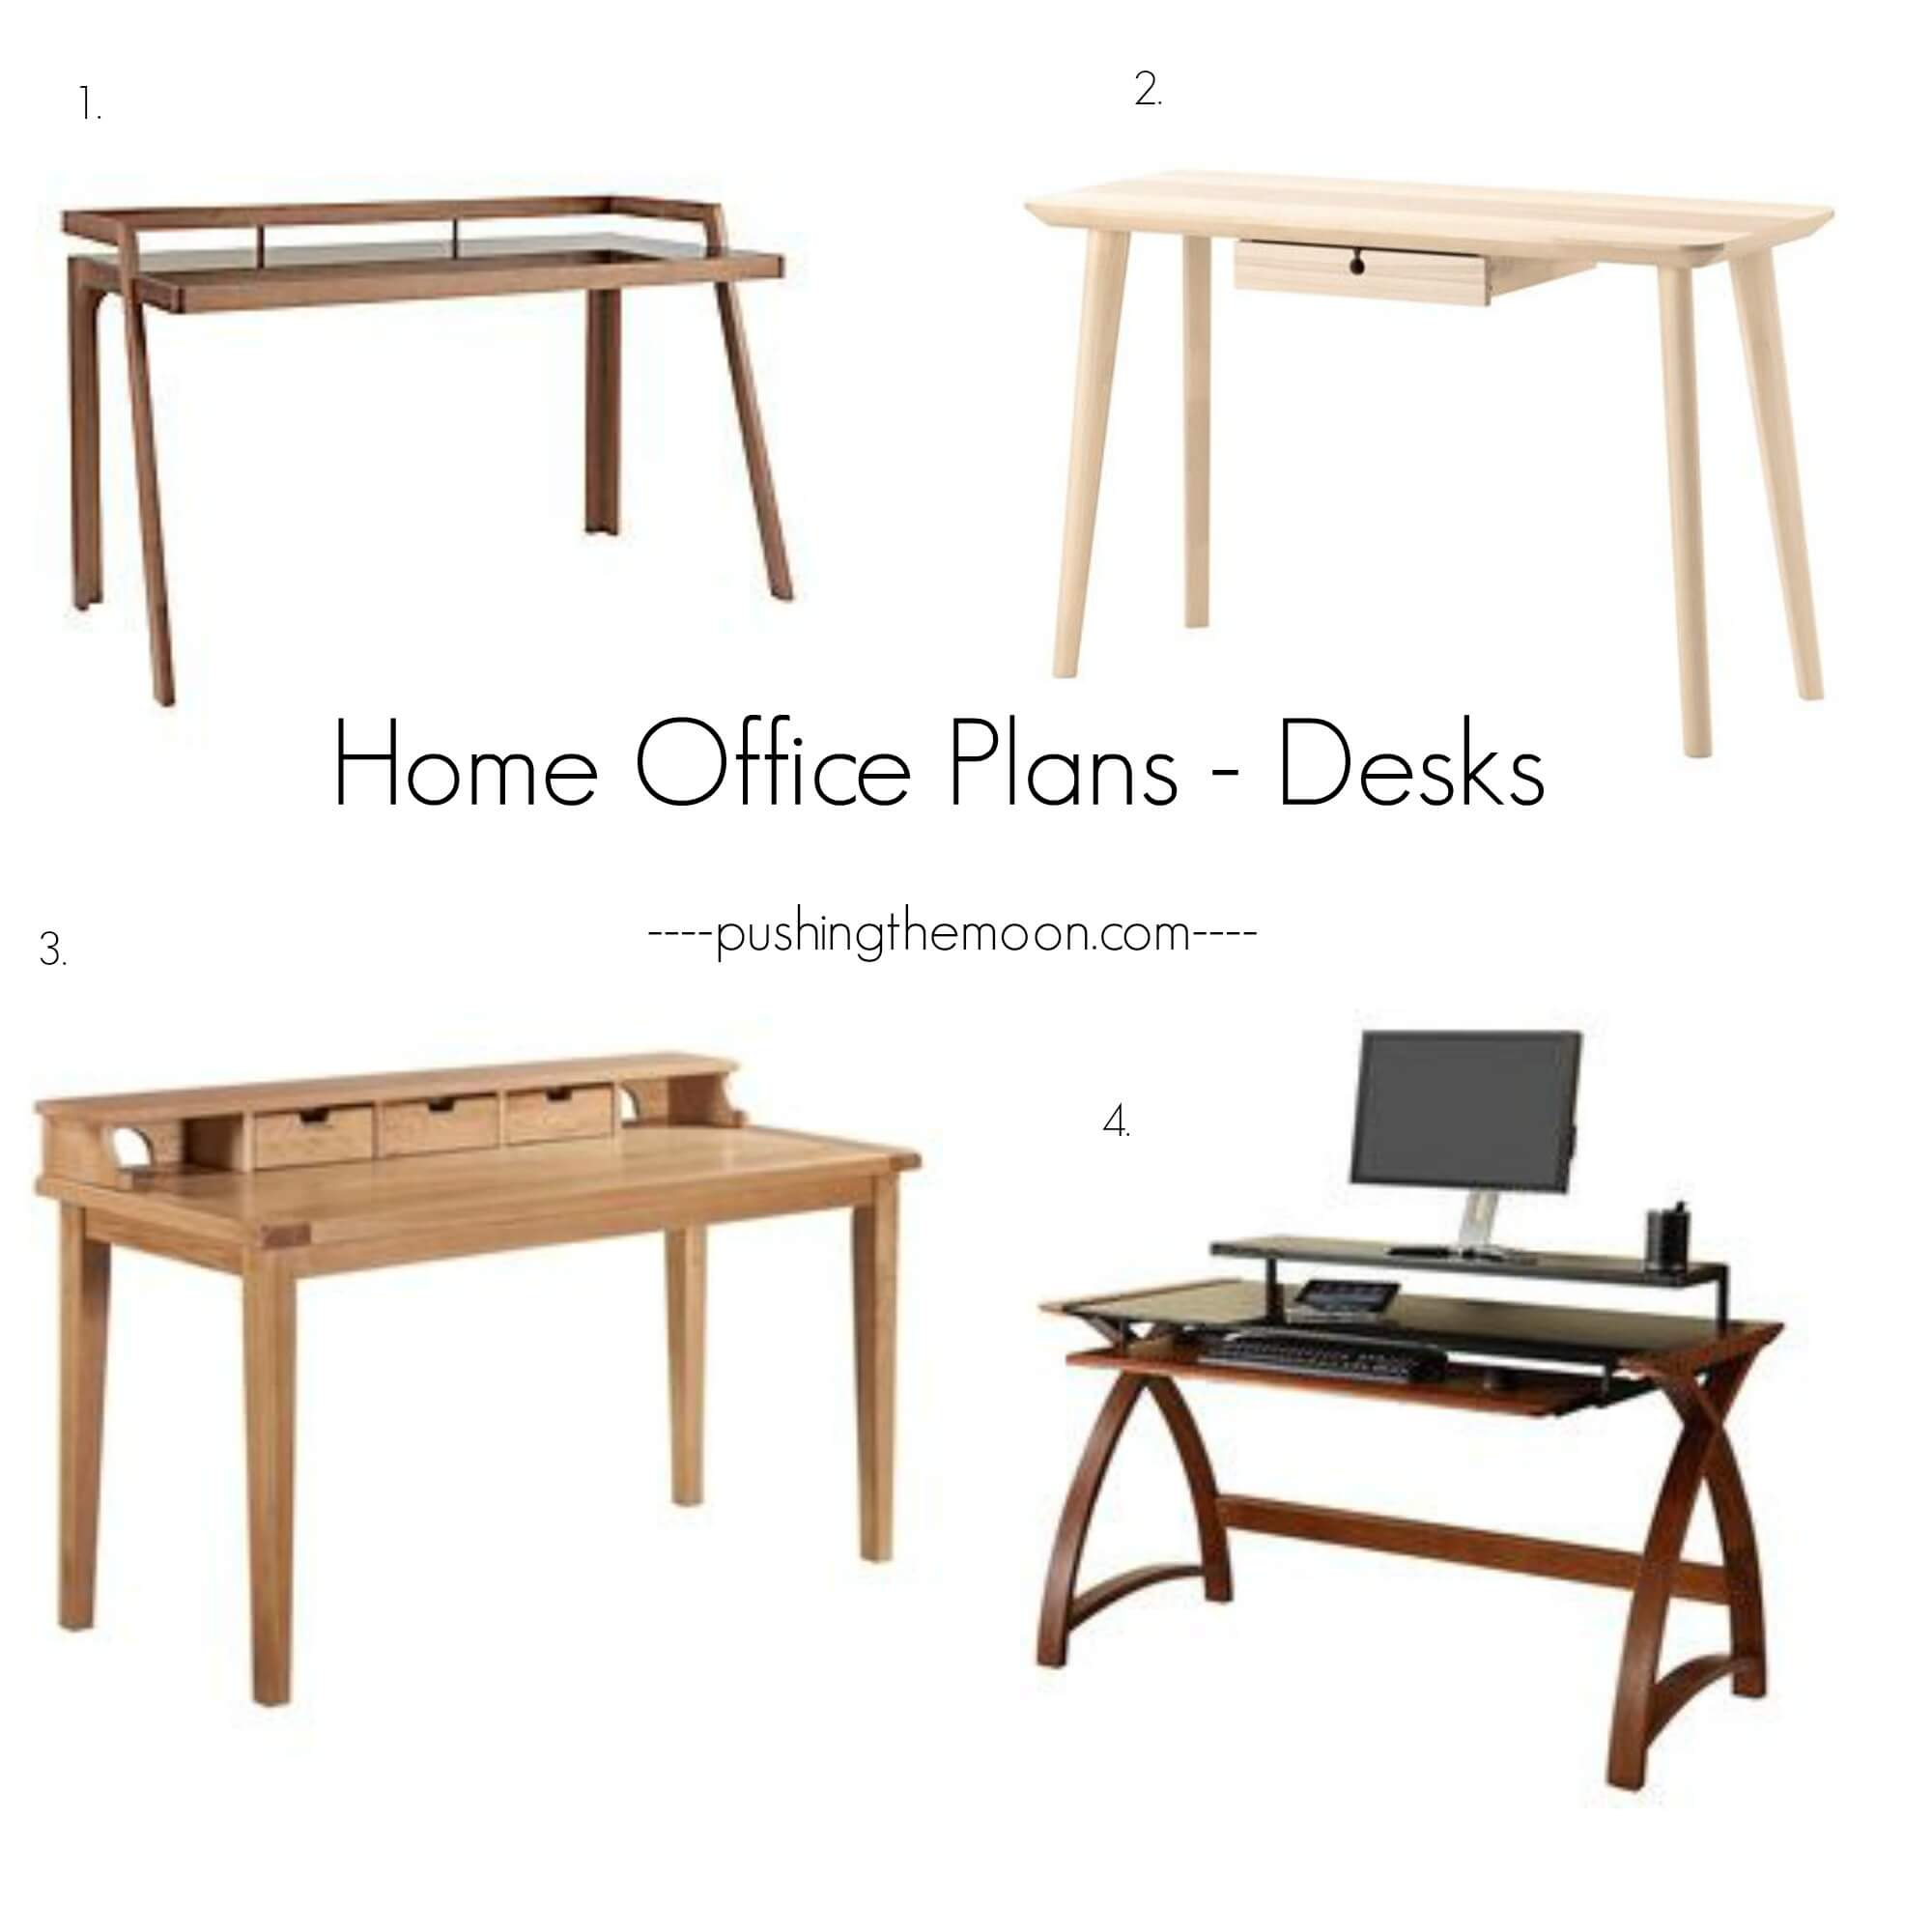 Home Office Plans | Pushing the Moon